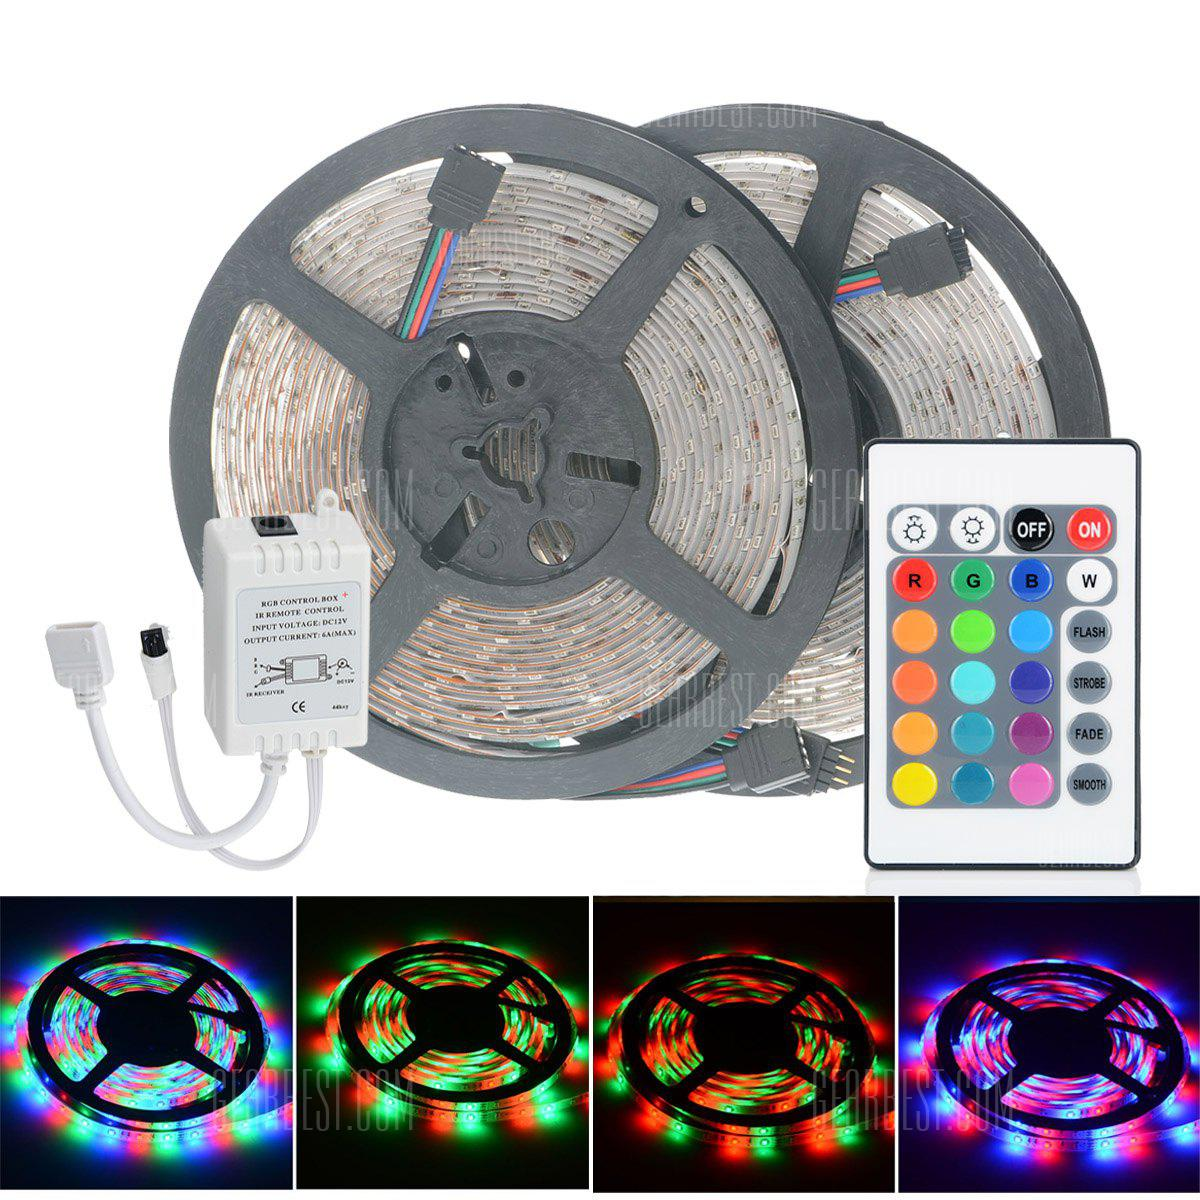 2pcs hml 5m 24w 300 smd 2835 rgb led strip light 1086 free 2pcs hml 5m 24w 300 smd 2835 rgb led strip light aloadofball